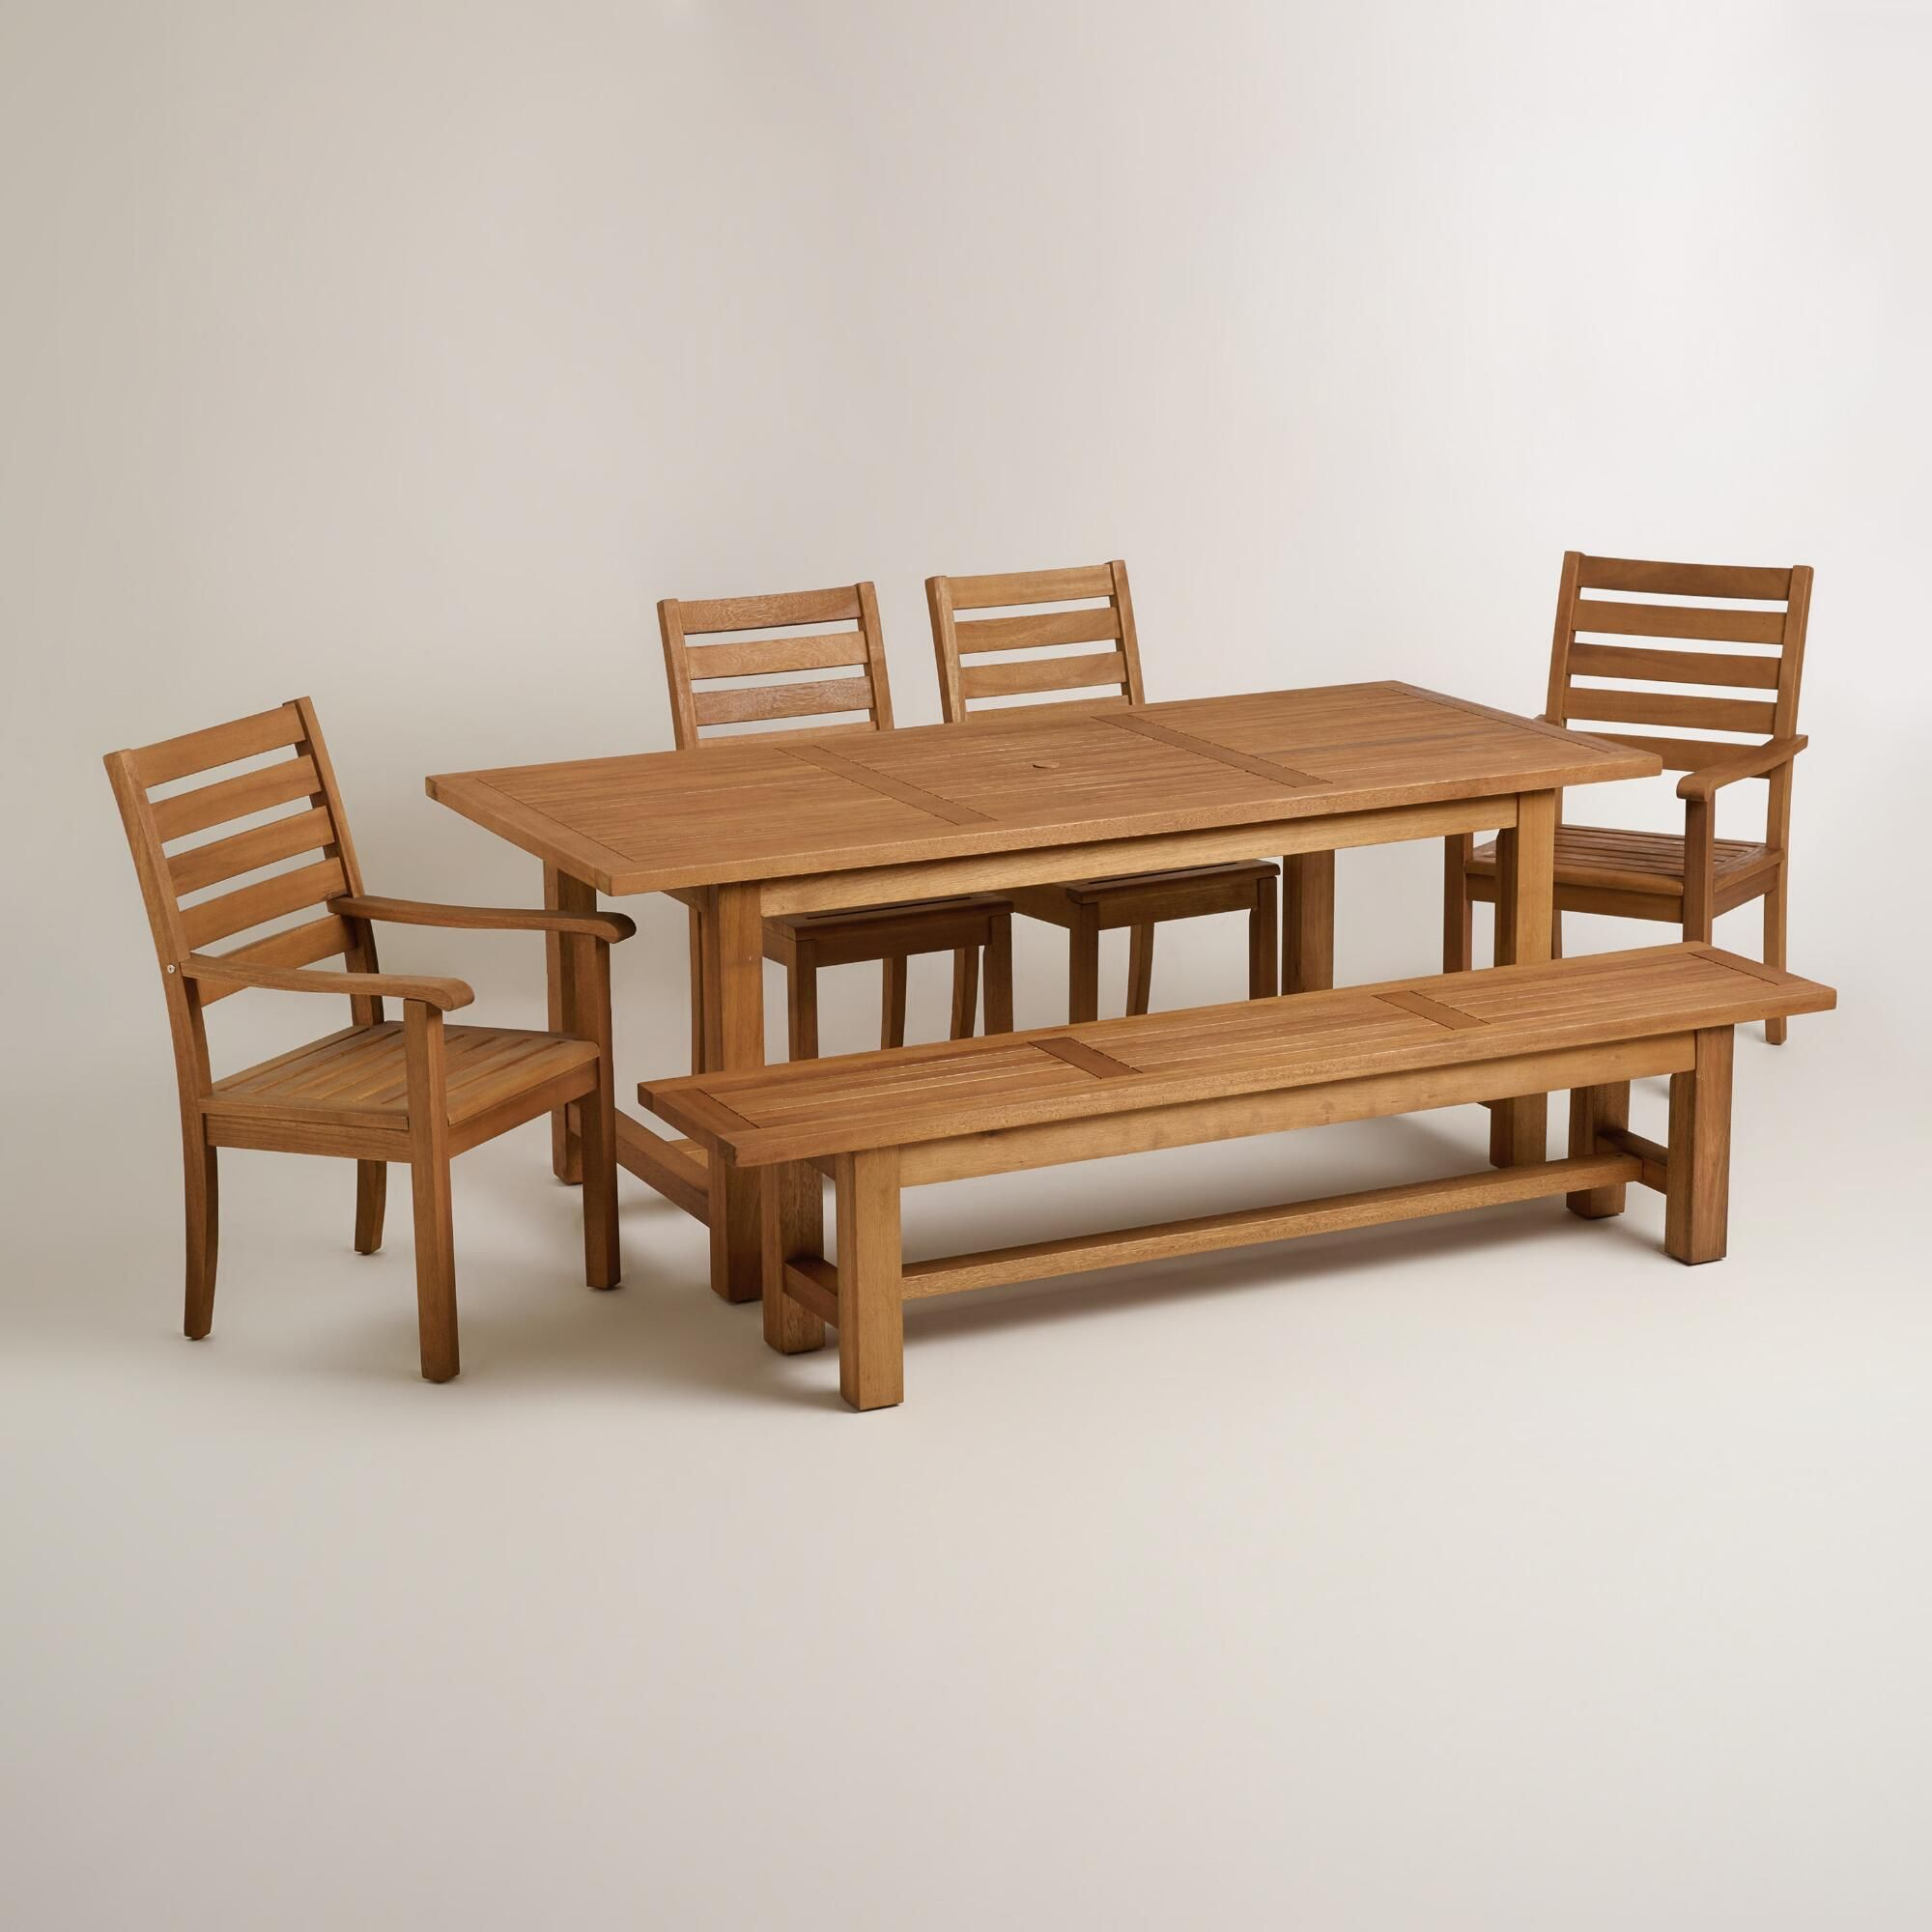 Cheap Nice Furniture For Sale: With A Dining Table, Bench, Side Chairs And Armchairs